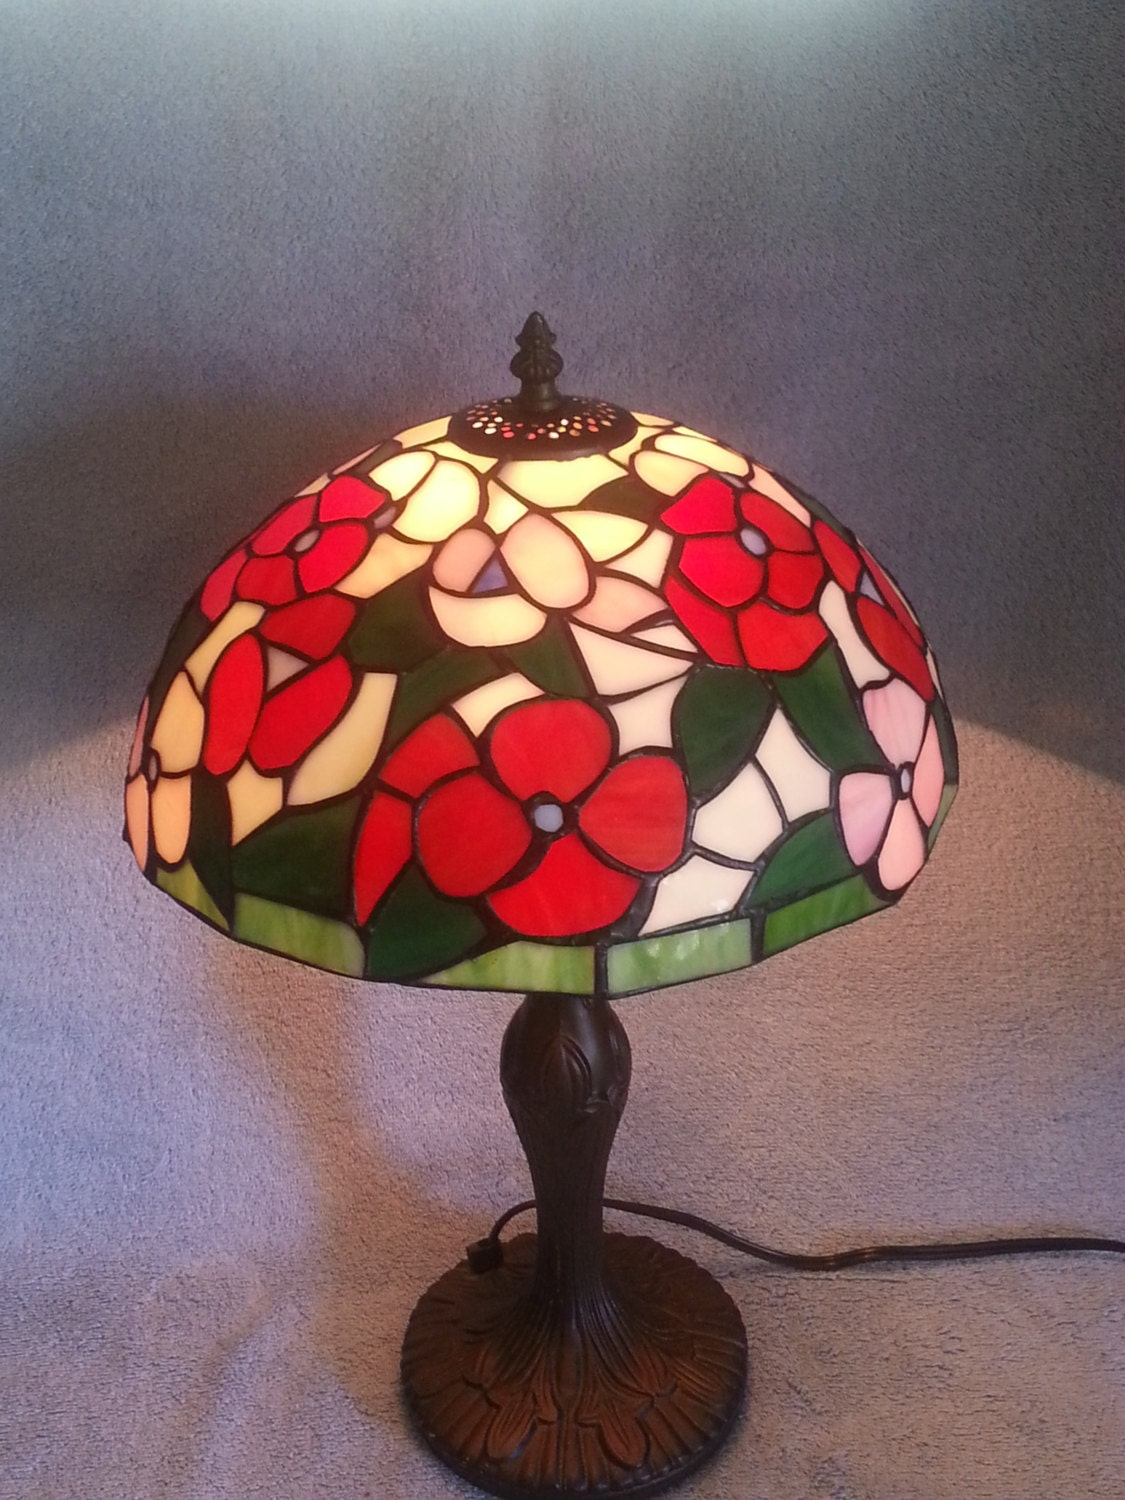 stained glass lamp floral pattern. Black Bedroom Furniture Sets. Home Design Ideas